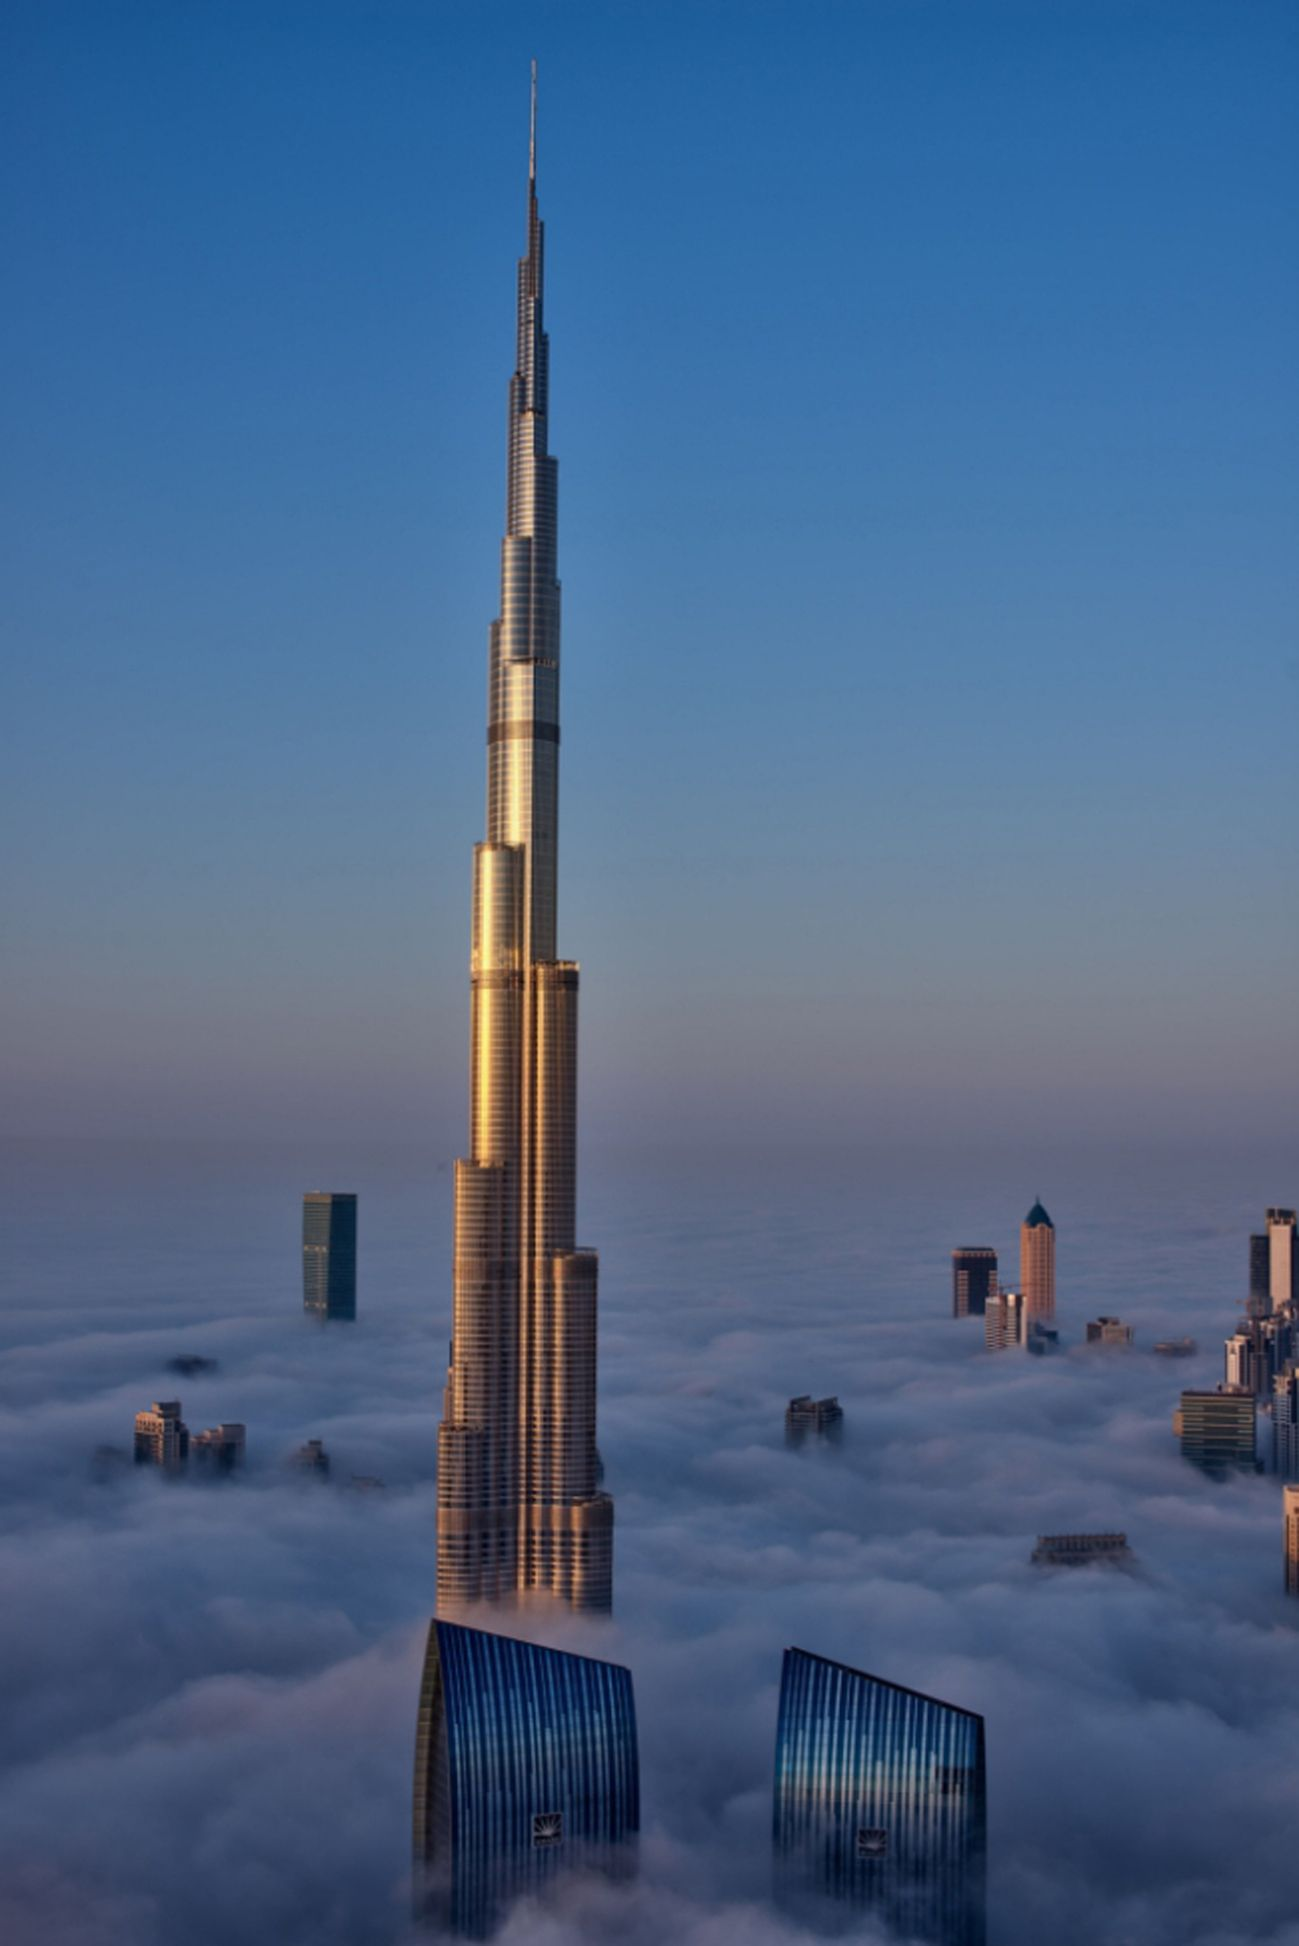 burj-eye view from world's tallest building | dubai architecture